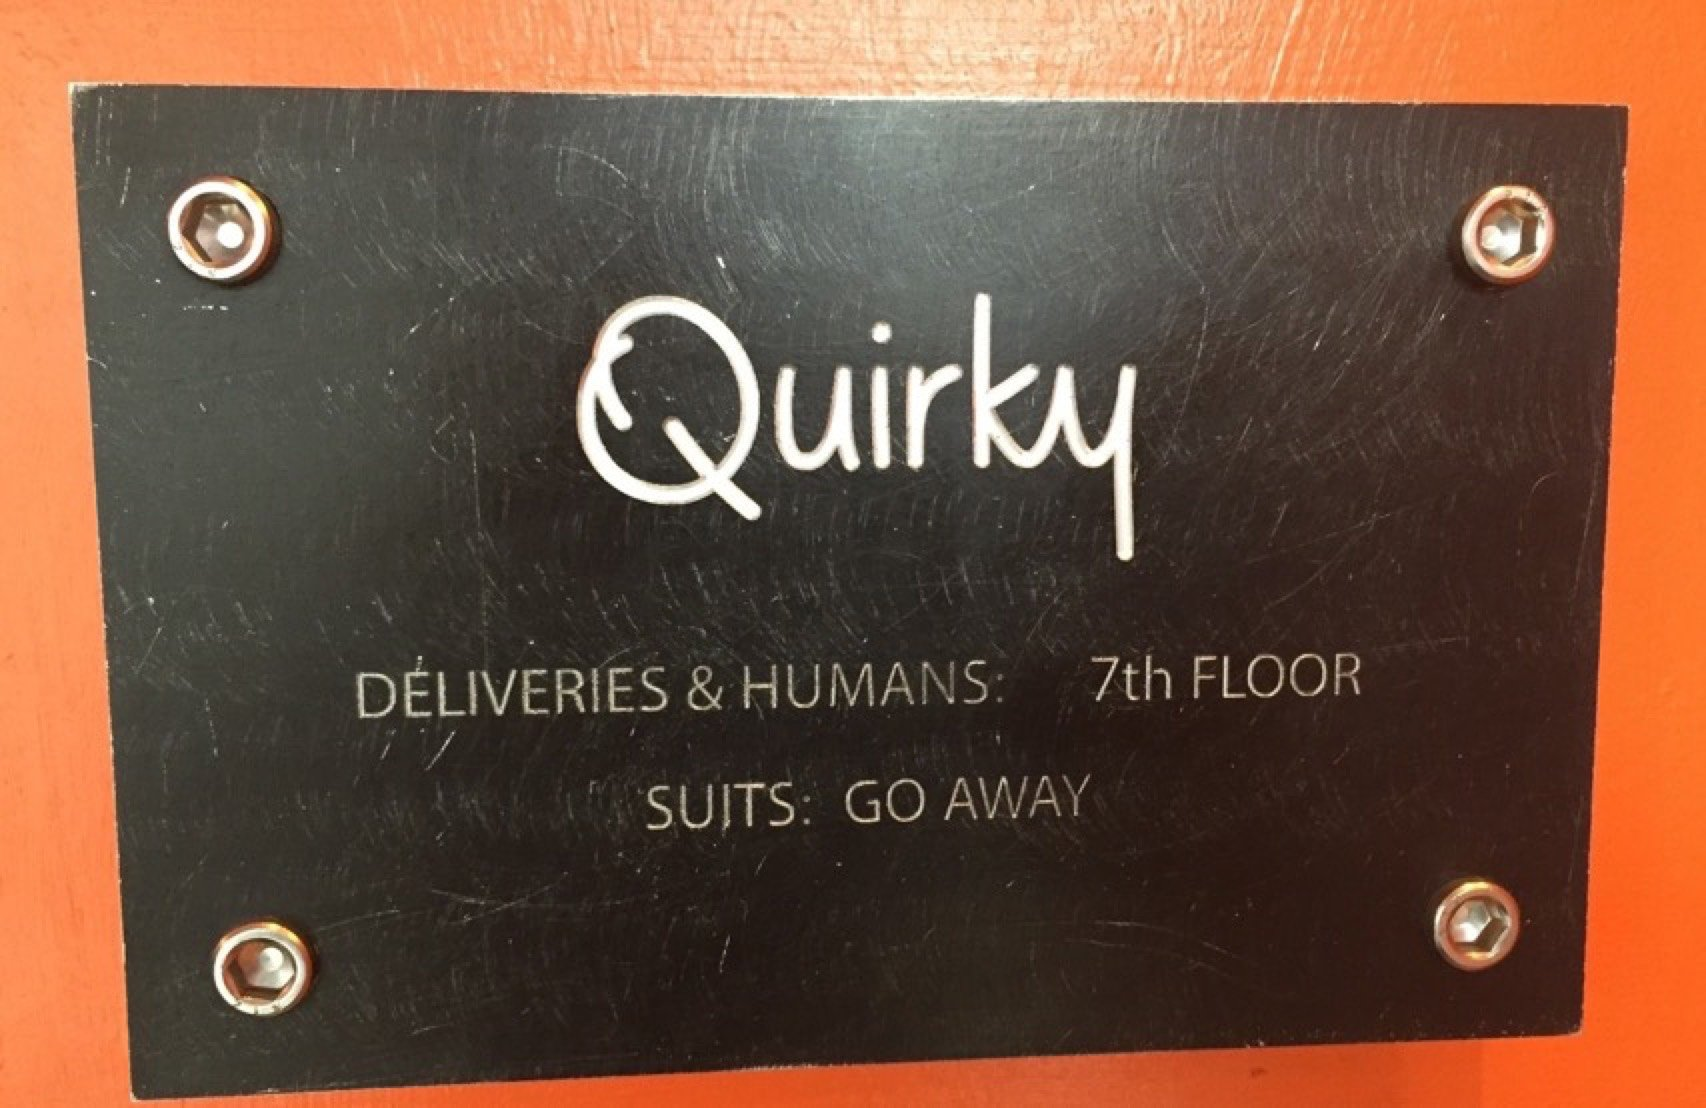 Quirky-1-1-1-1